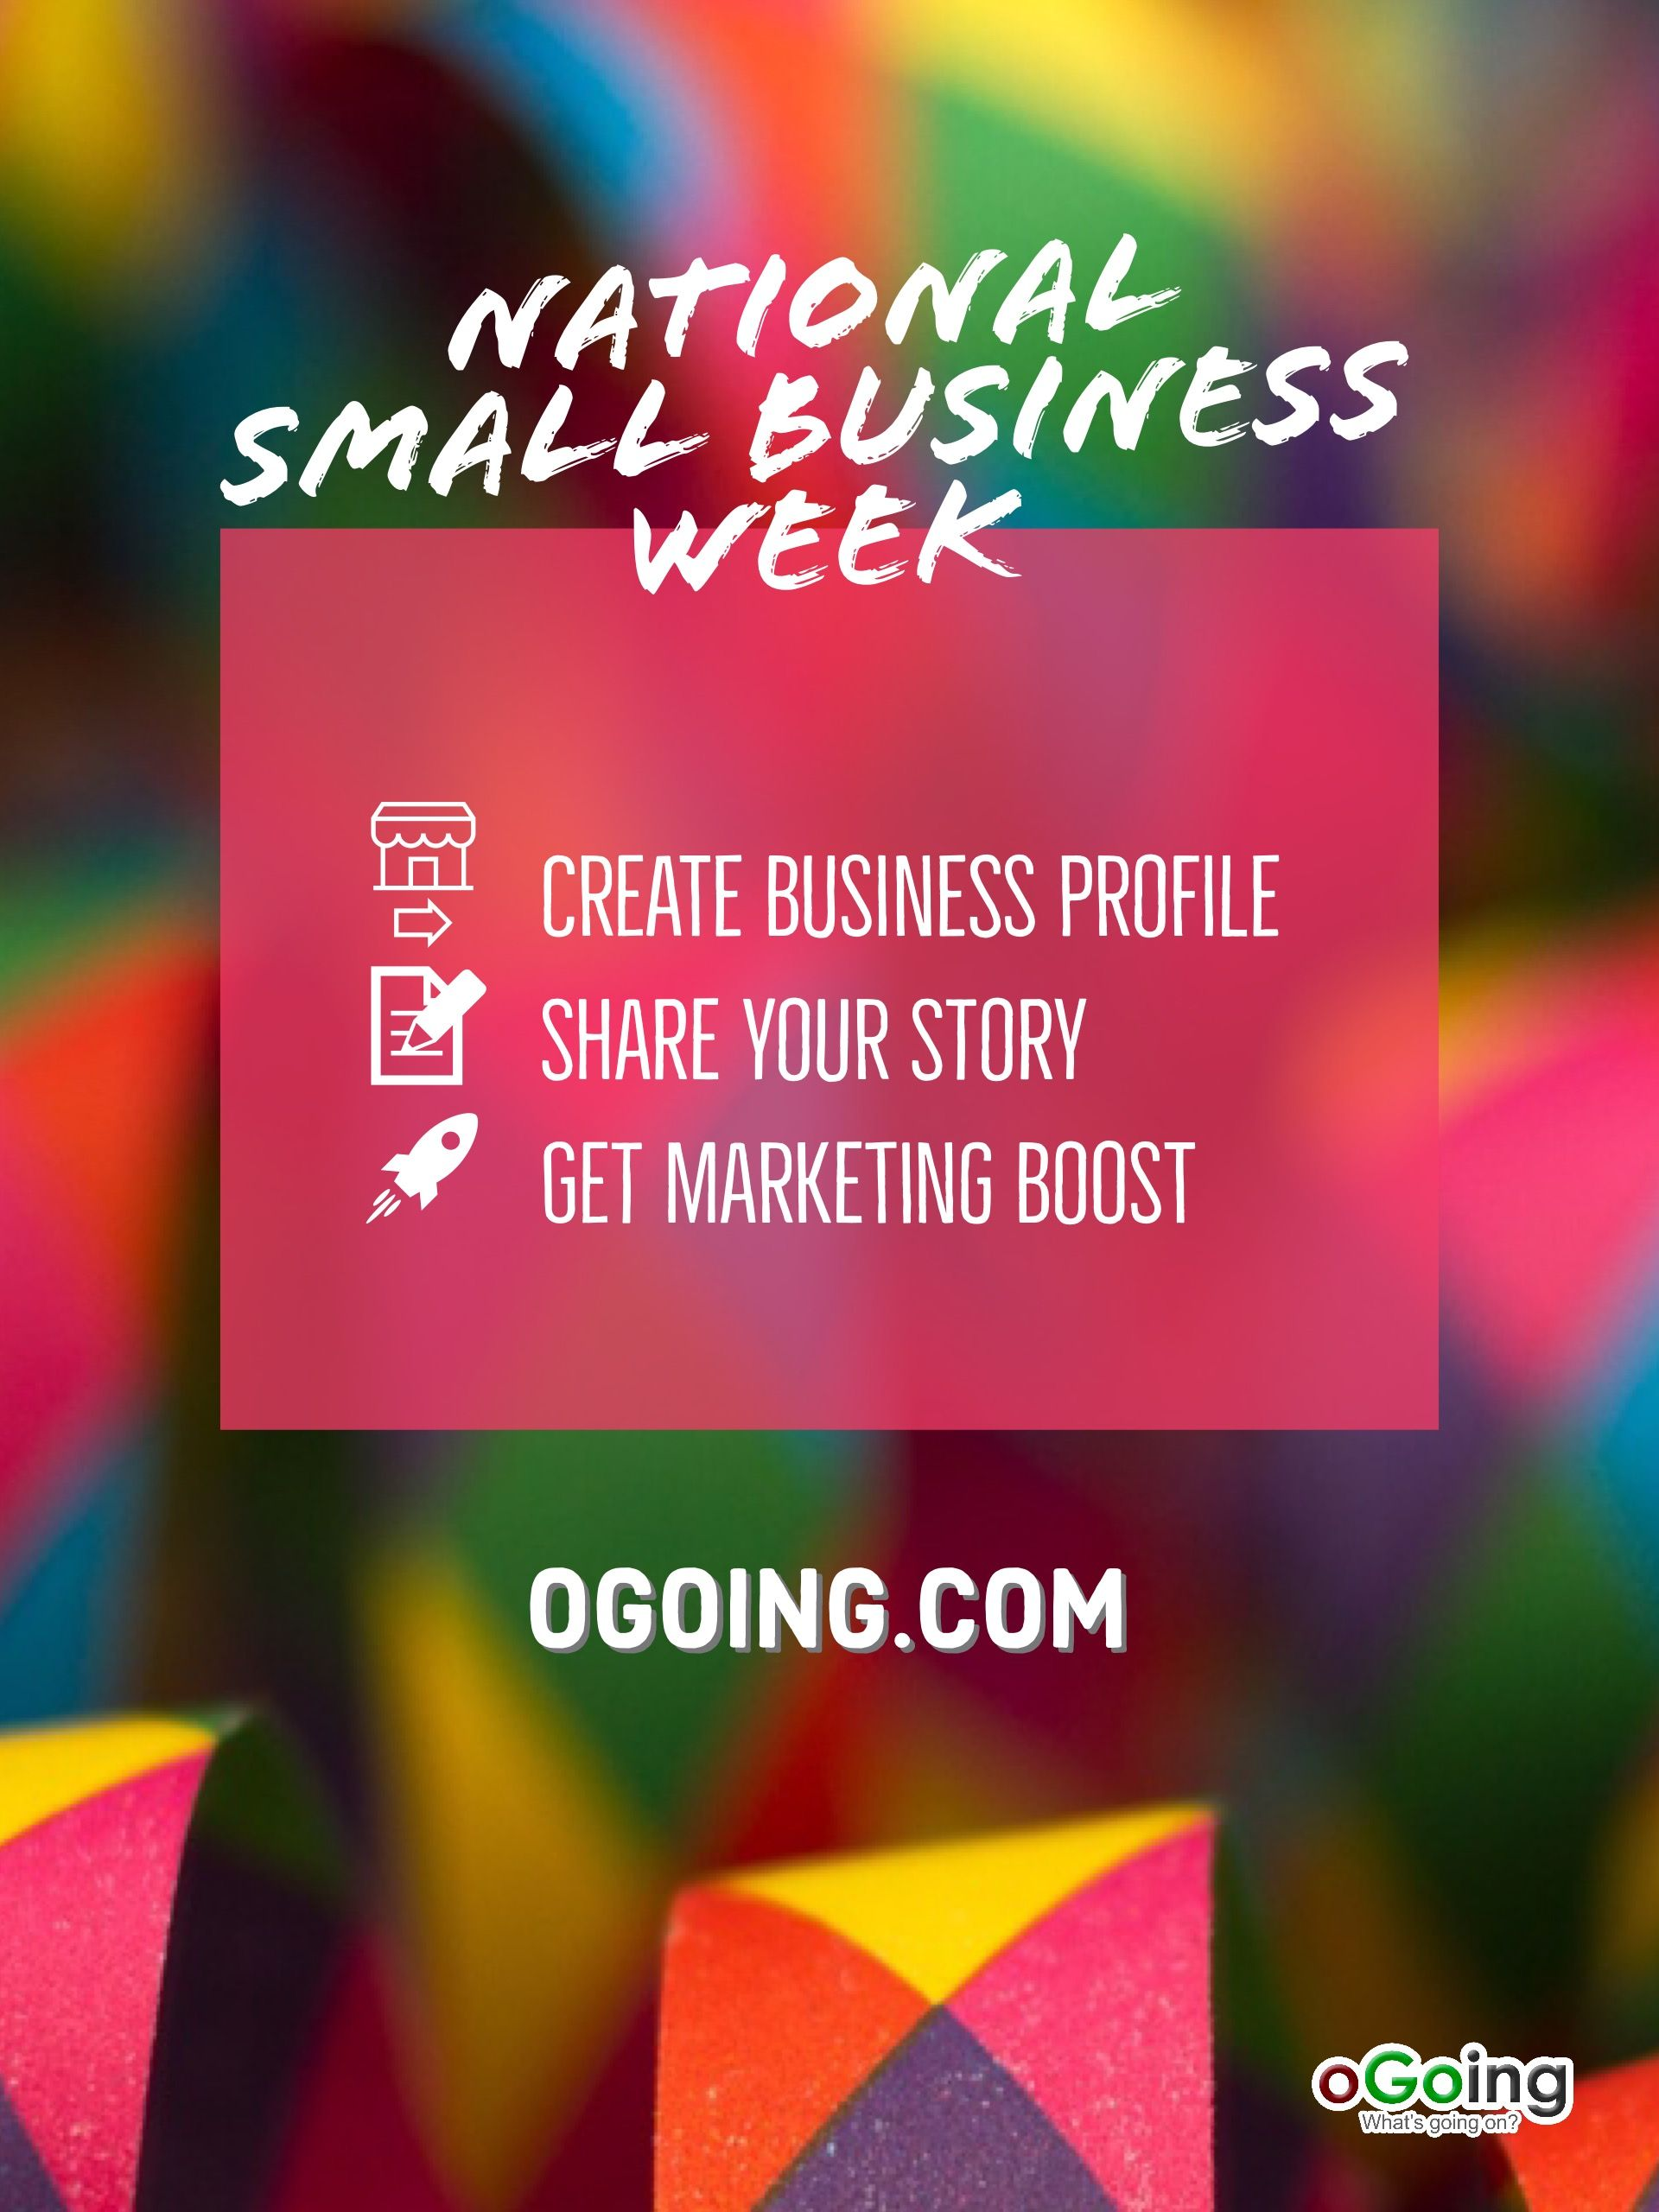 Pin About Small Business Week And National Small Business